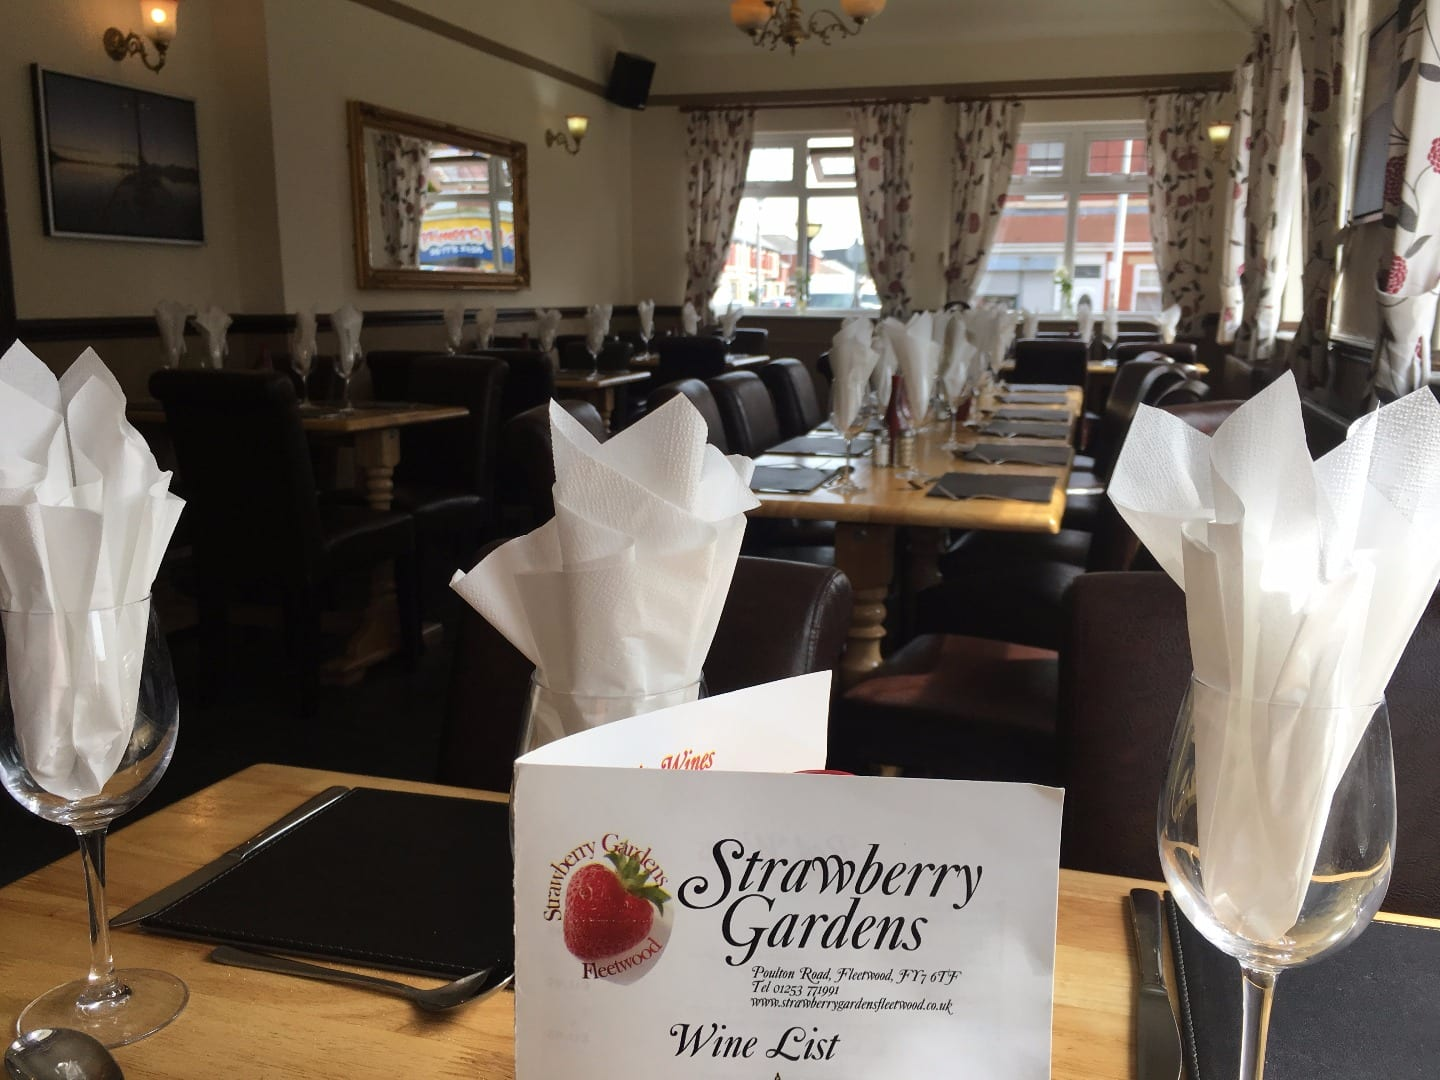 Dining room at the Strawberry Gardens Pub and Bistro, Fleetwood